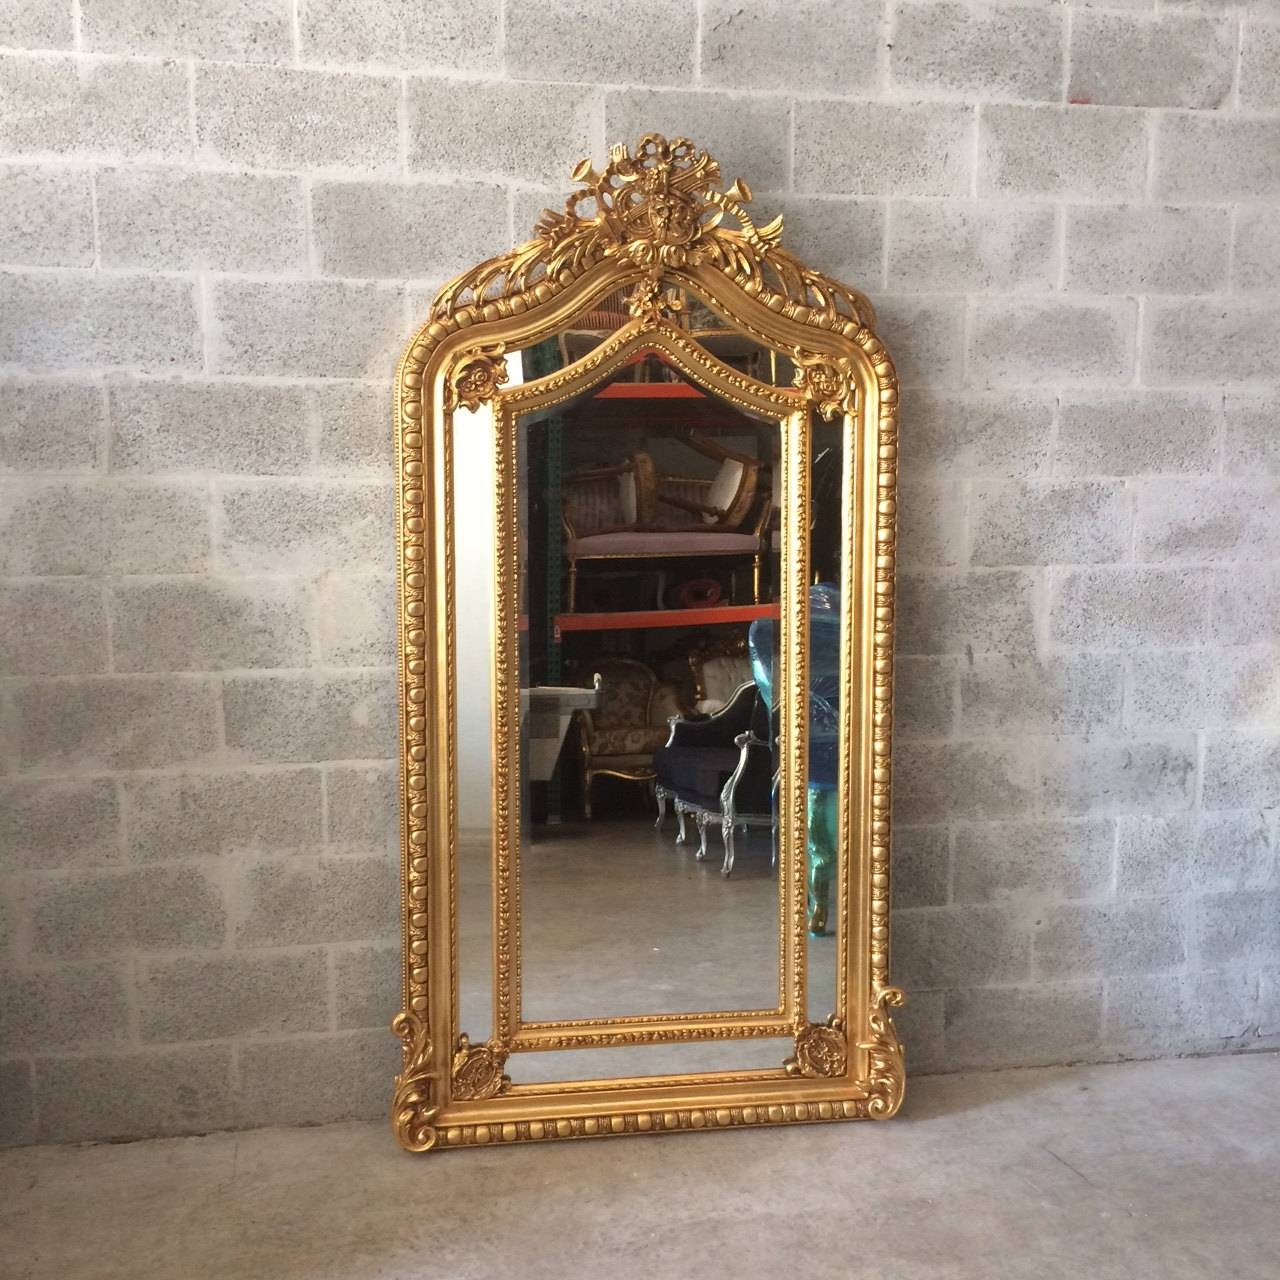 French Mirror Gold Antique Floor Mirror Carved French Furniture Pertaining To Baroque Floor Mirrors (View 13 of 15)